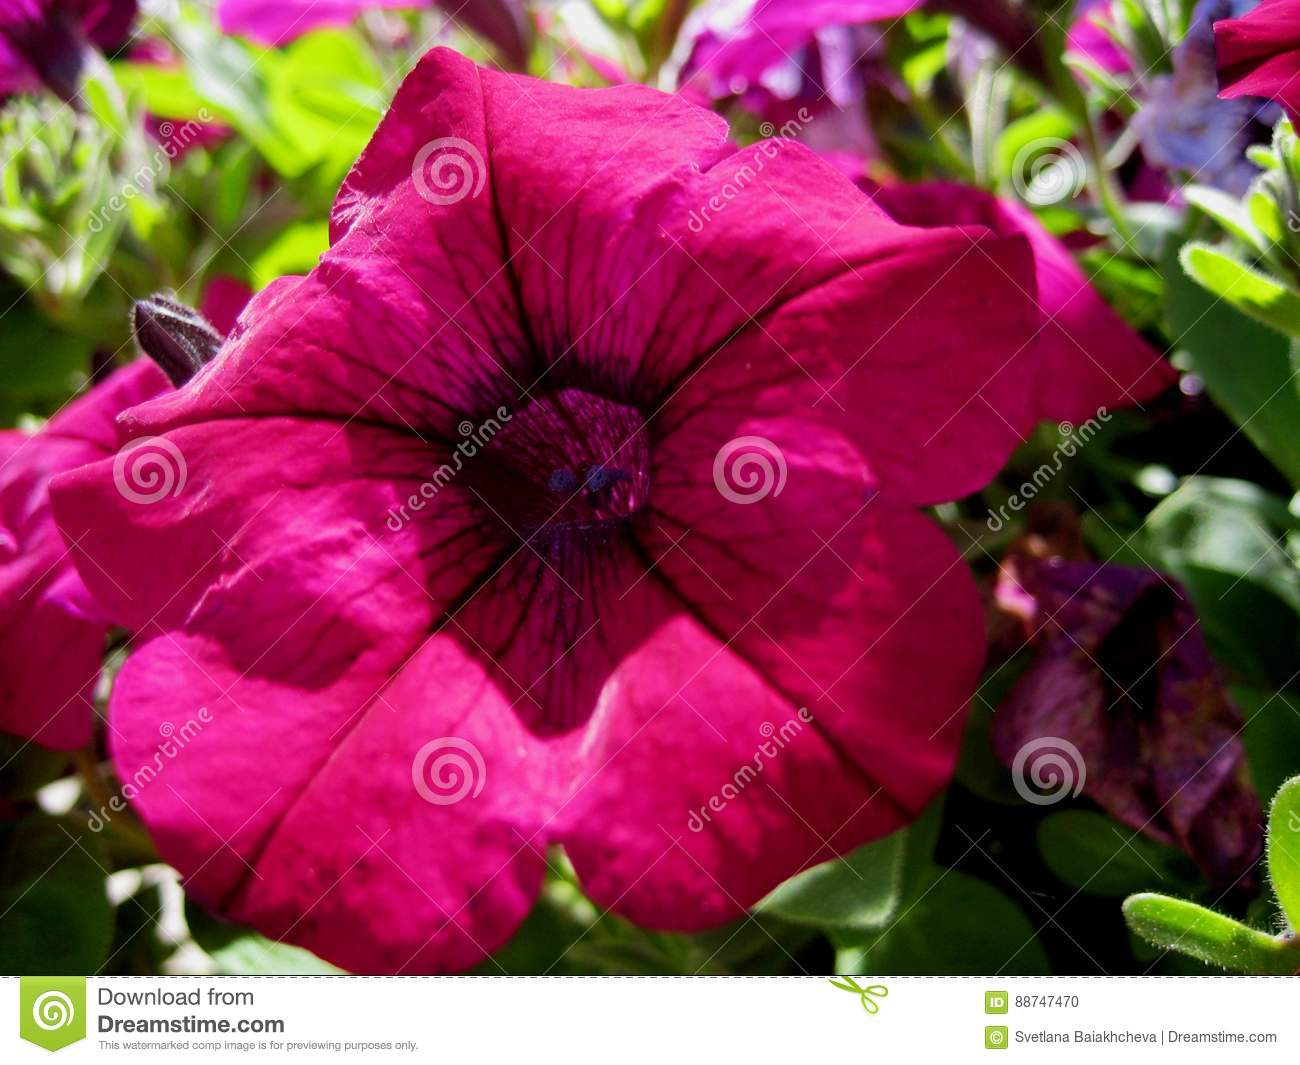 Macro Photos With Bright Beautiful Flowers Of Petunia For